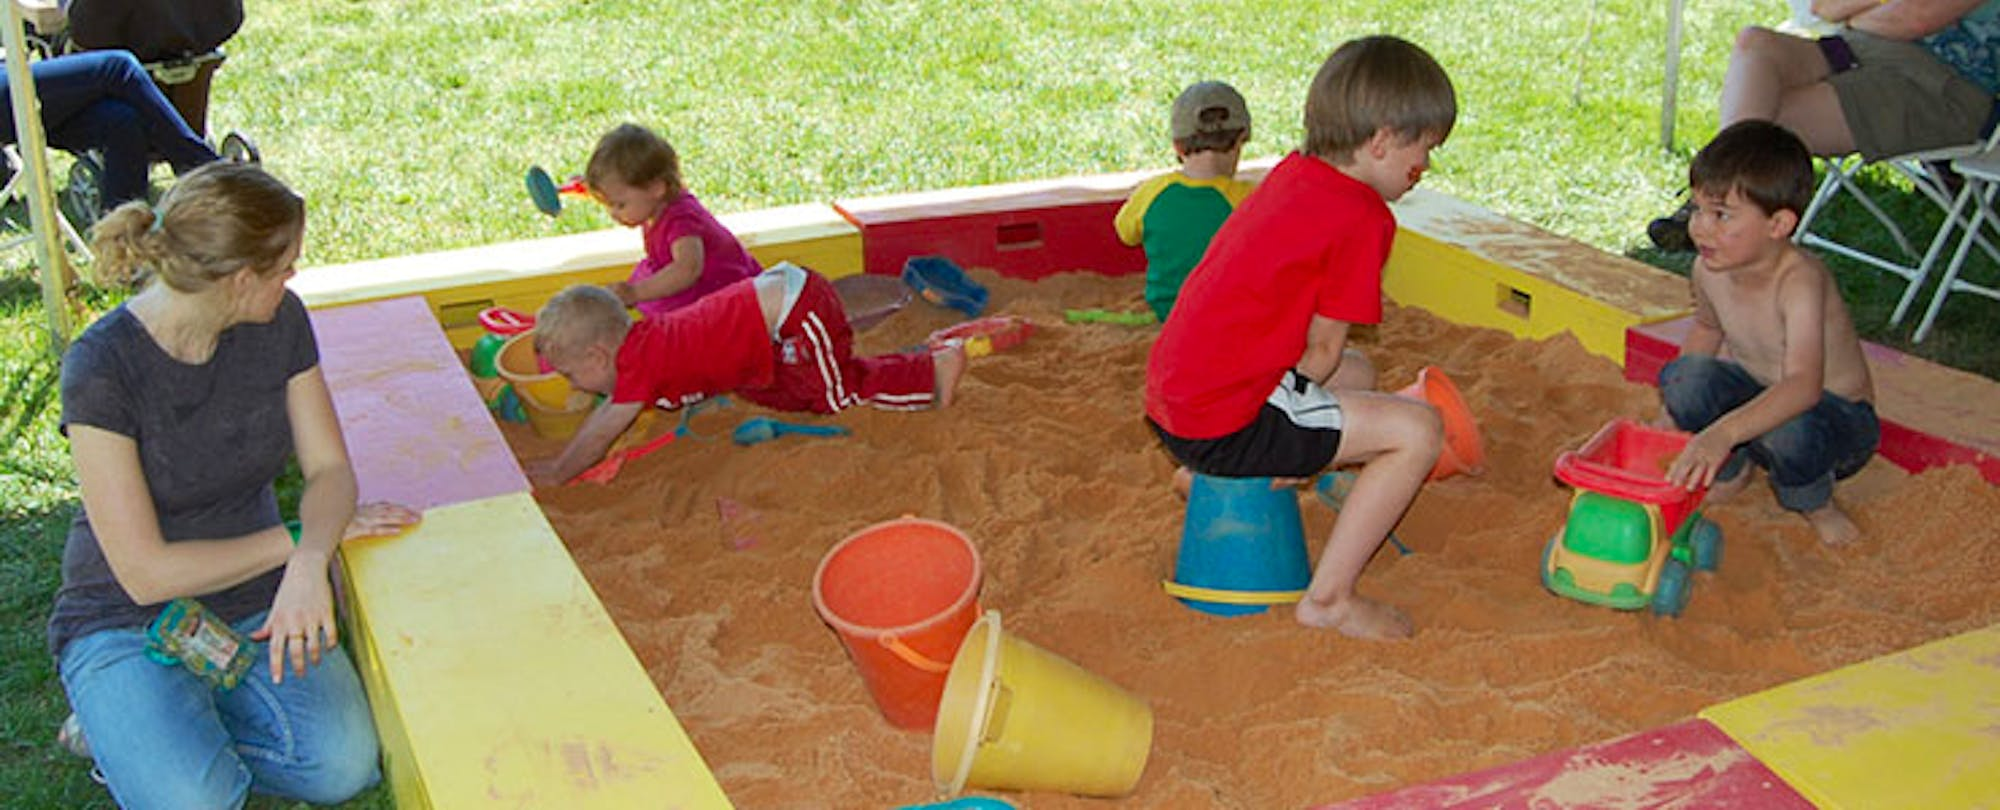 Child's Play: Lessons from the Sandbox